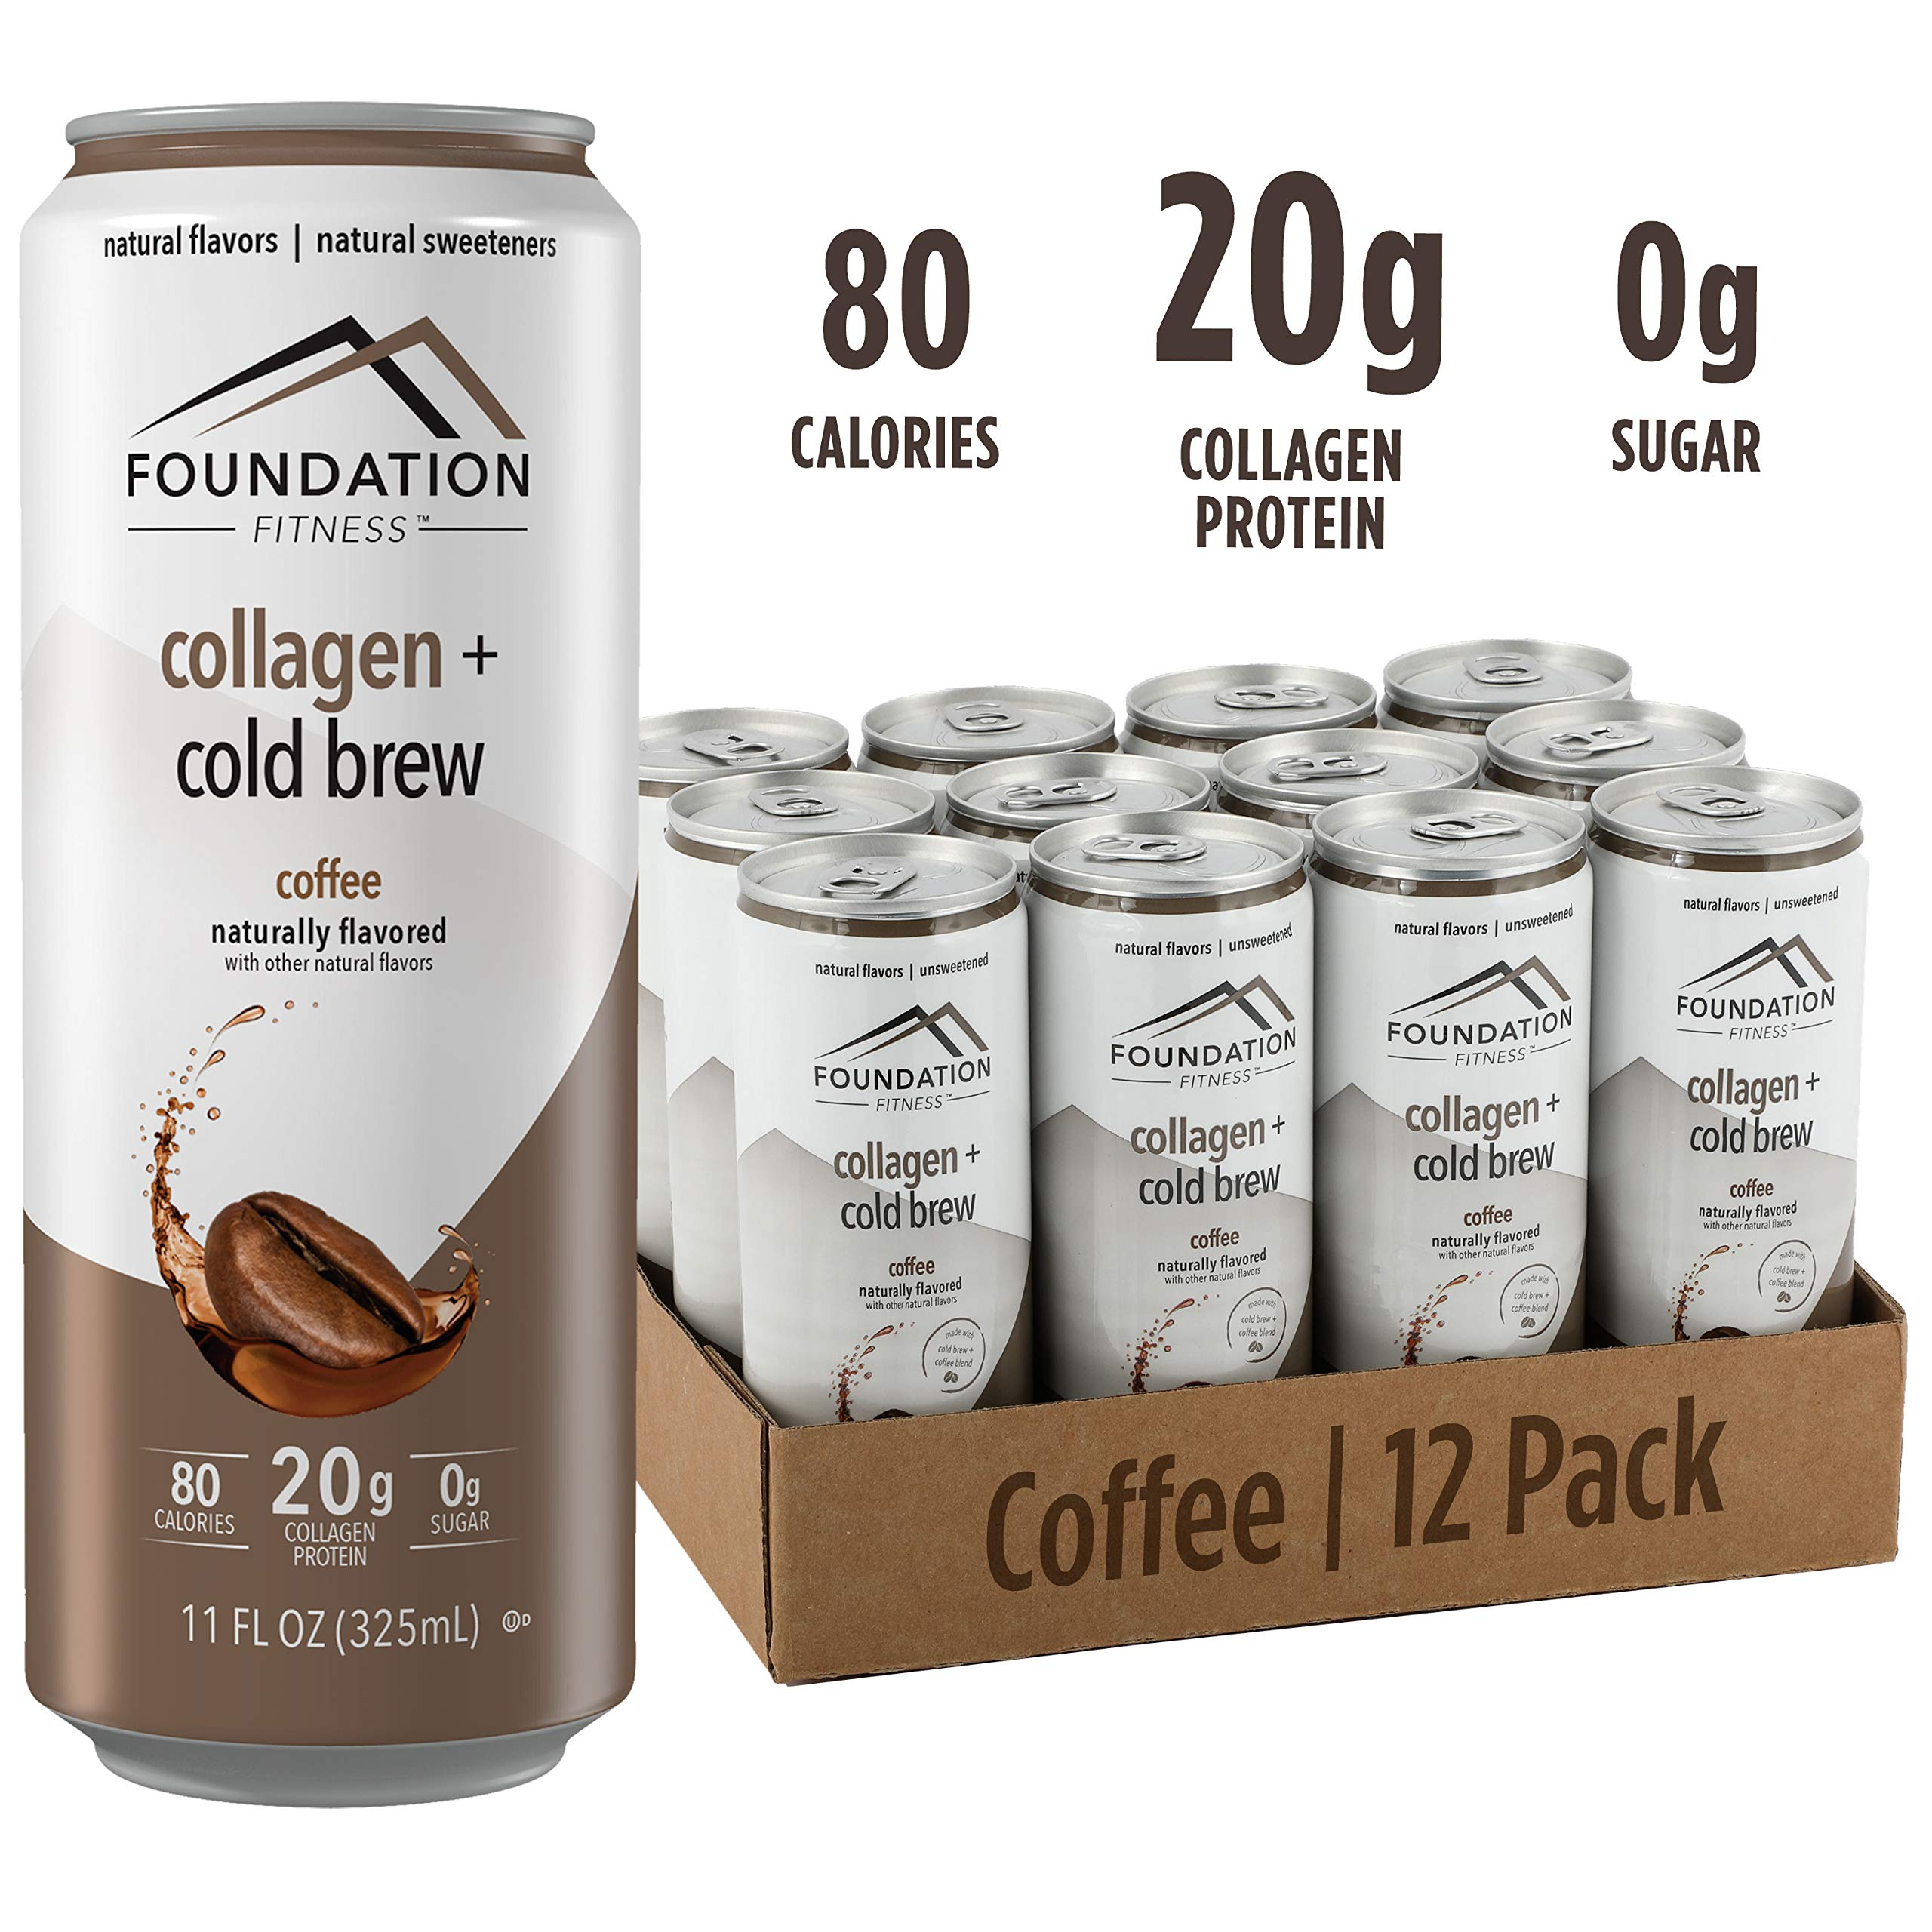 Foundation Fitness Cold Brew Coffee plus Collagen Protein, Unsweetened, Ready to Drink, 0g Sugar, 11 fl oz (Pack of 12) by Foundation Fitness